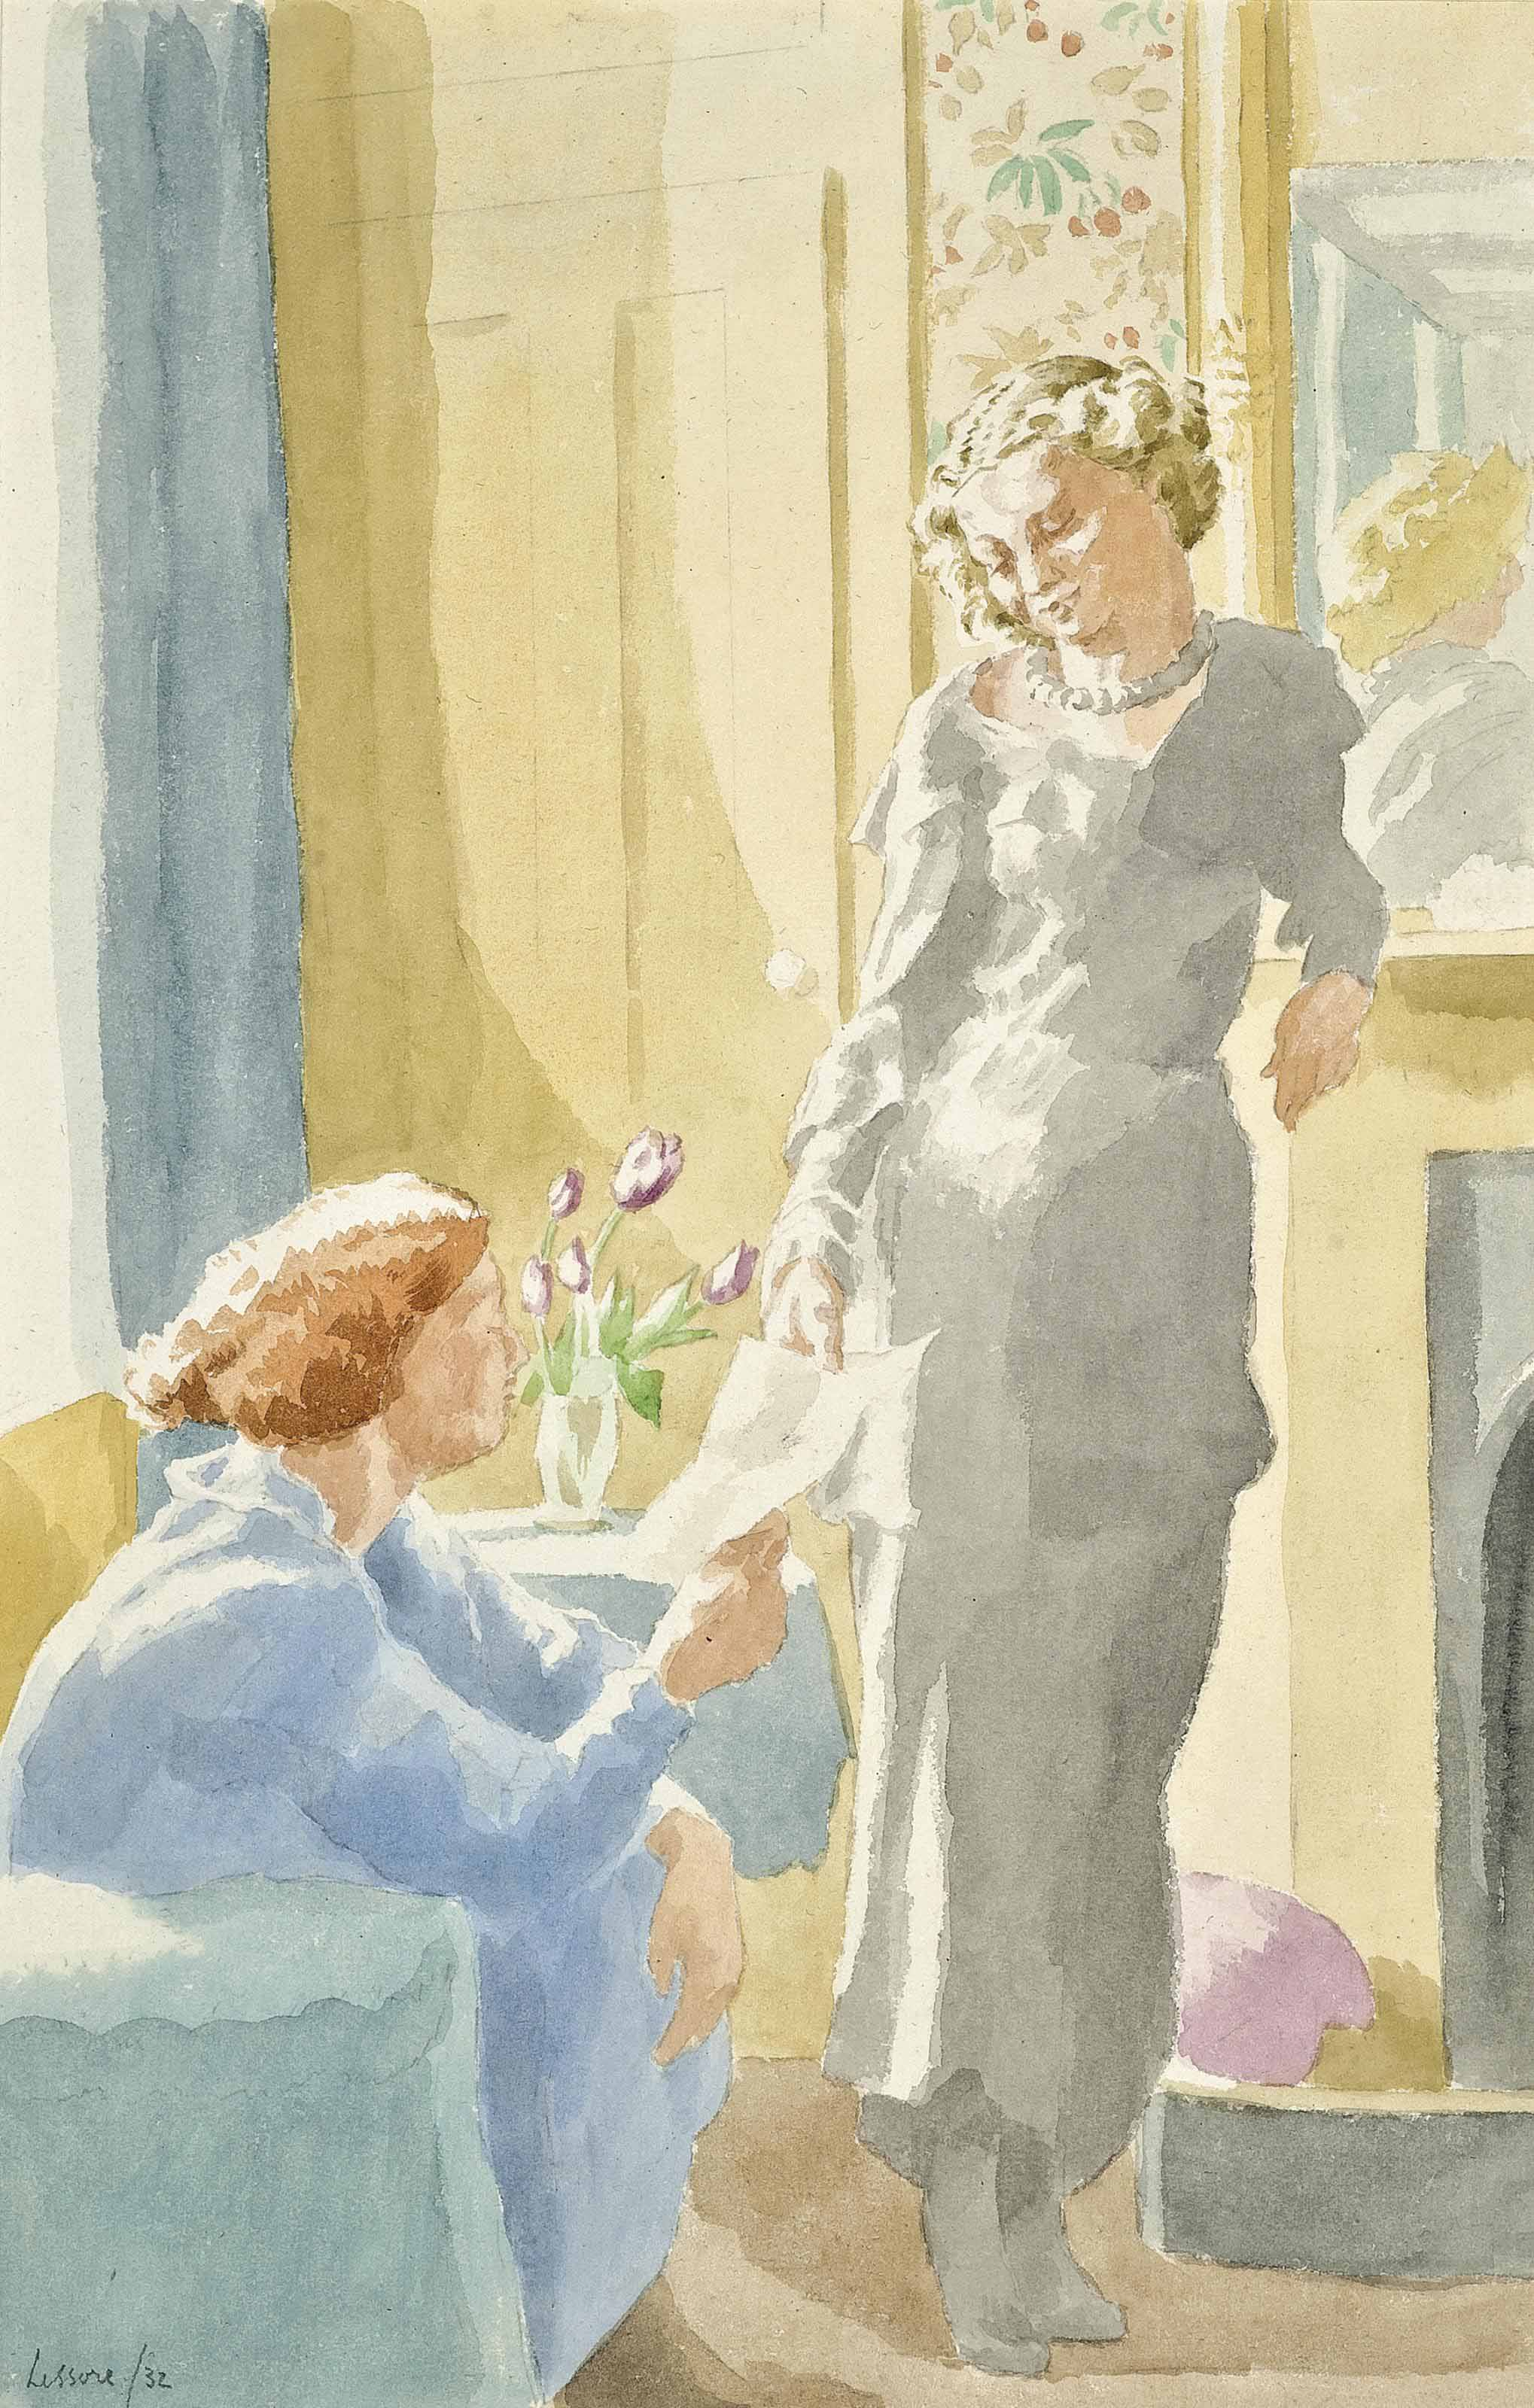 Lady Pansy and a companion in an interior